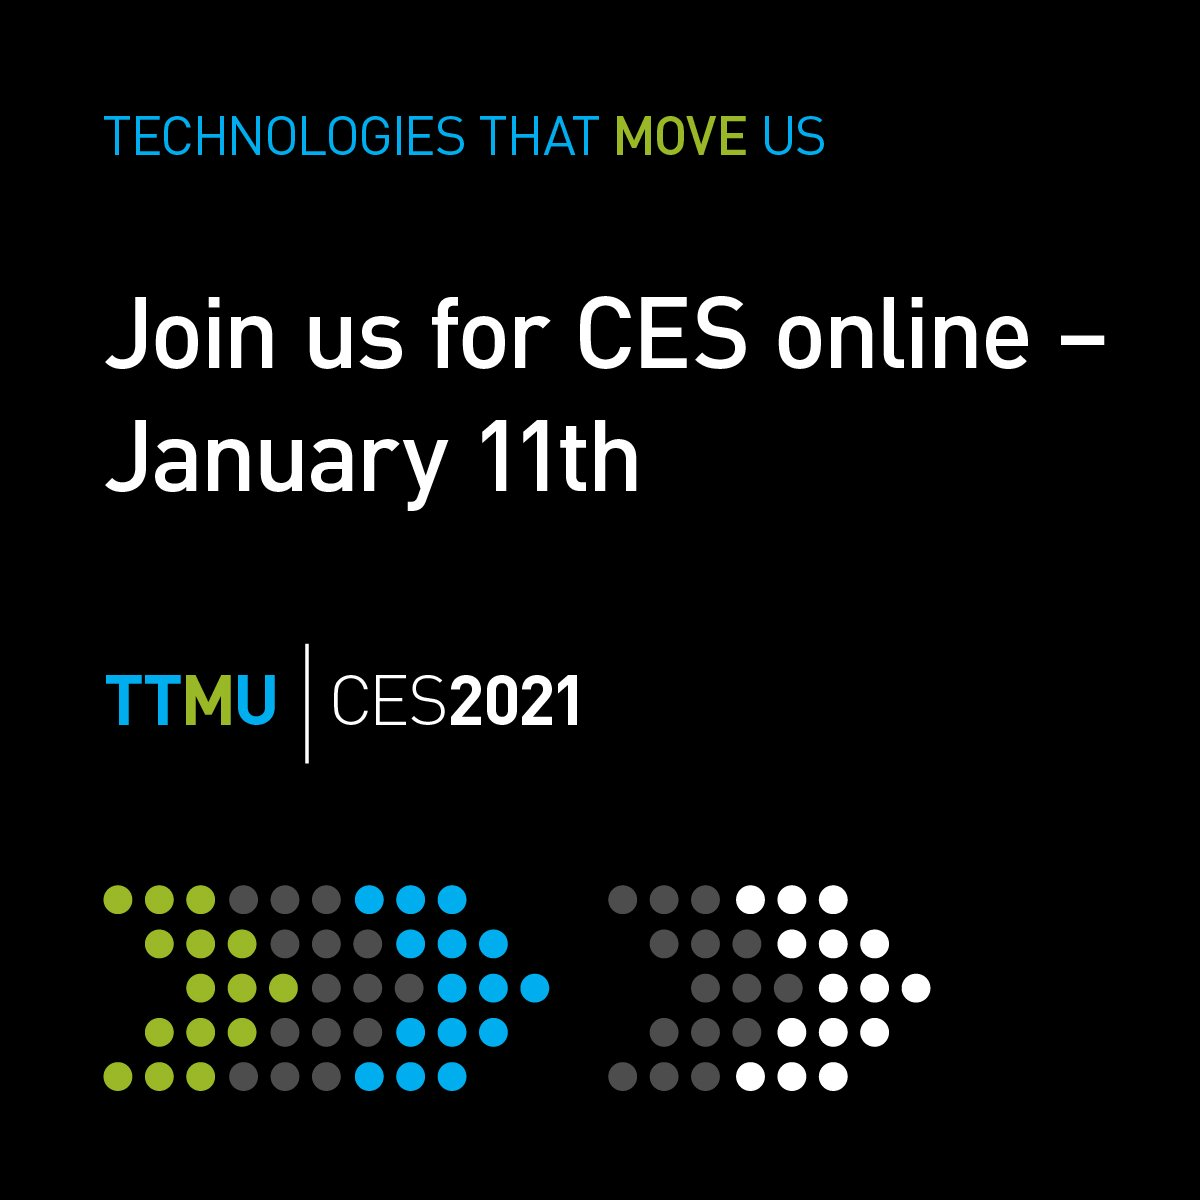 Join us for Panasonic CES 2021 online from January 11, 2021